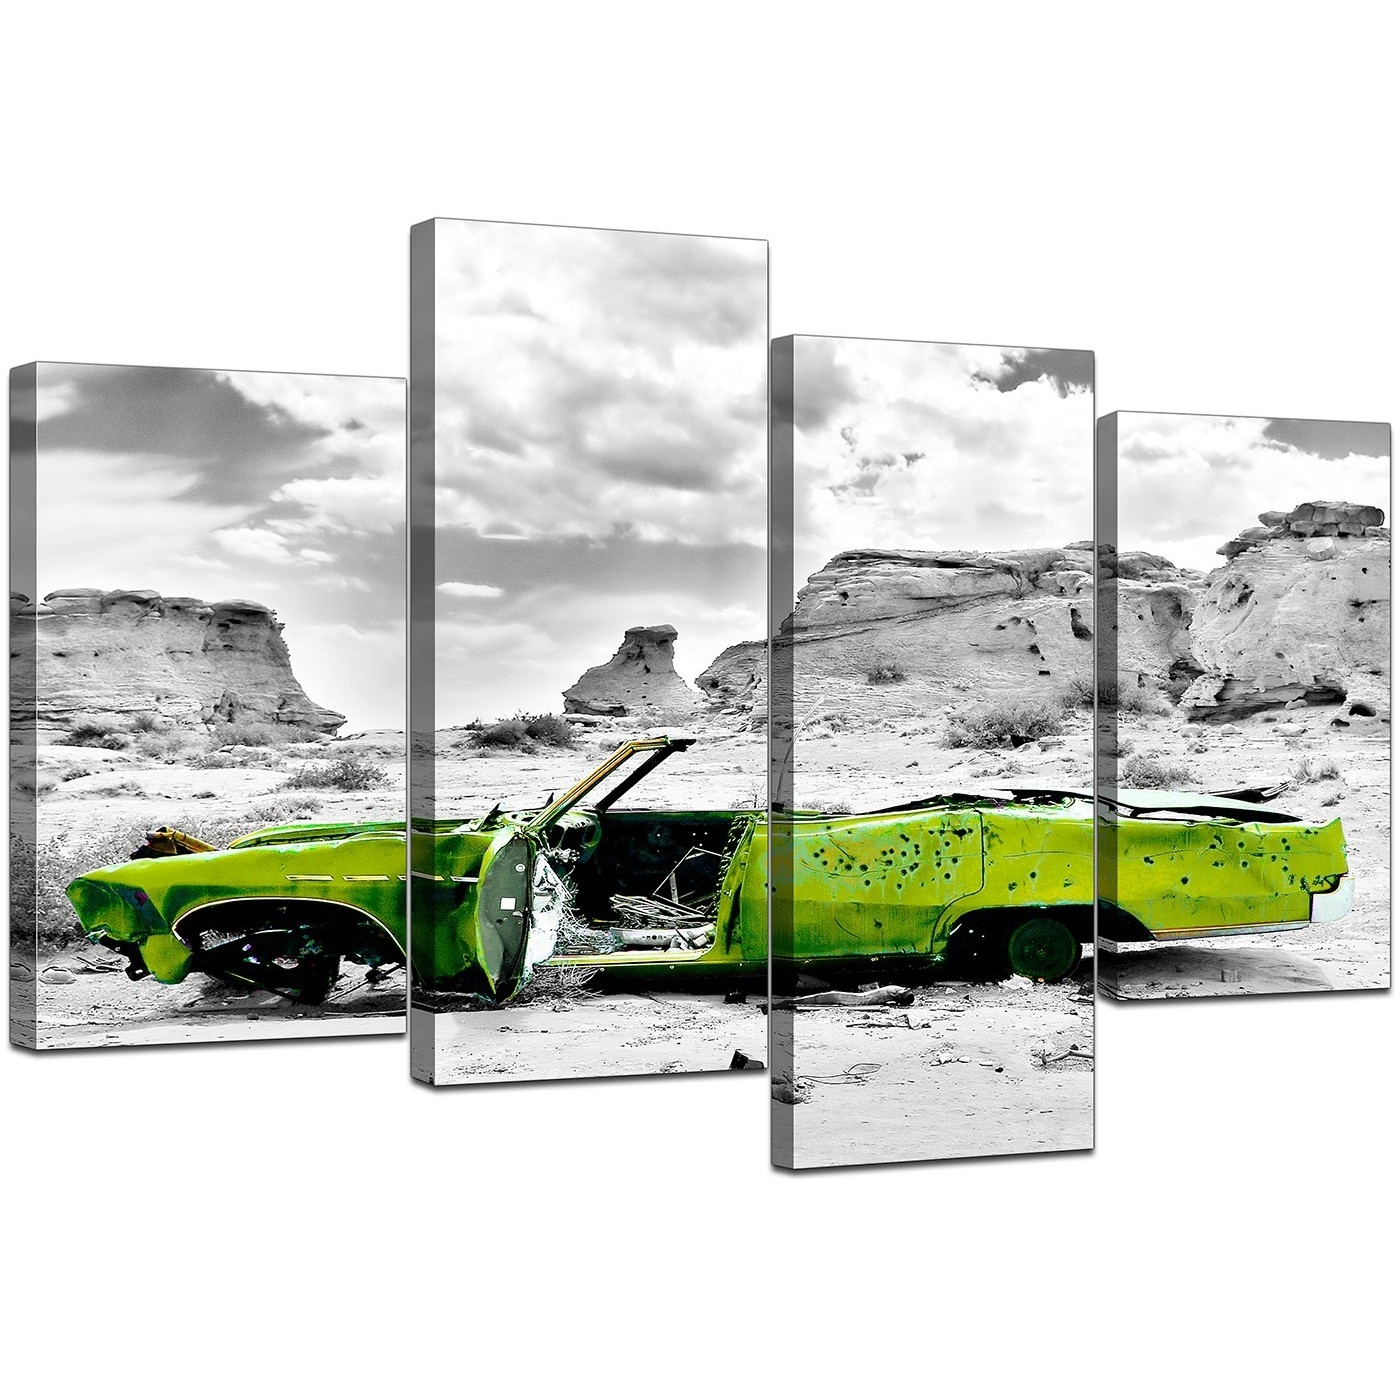 Canvas Art Of Green Car In Black & White For Your Office Intended For Current Lime Green Canvas Wall Art (View 8 of 15)